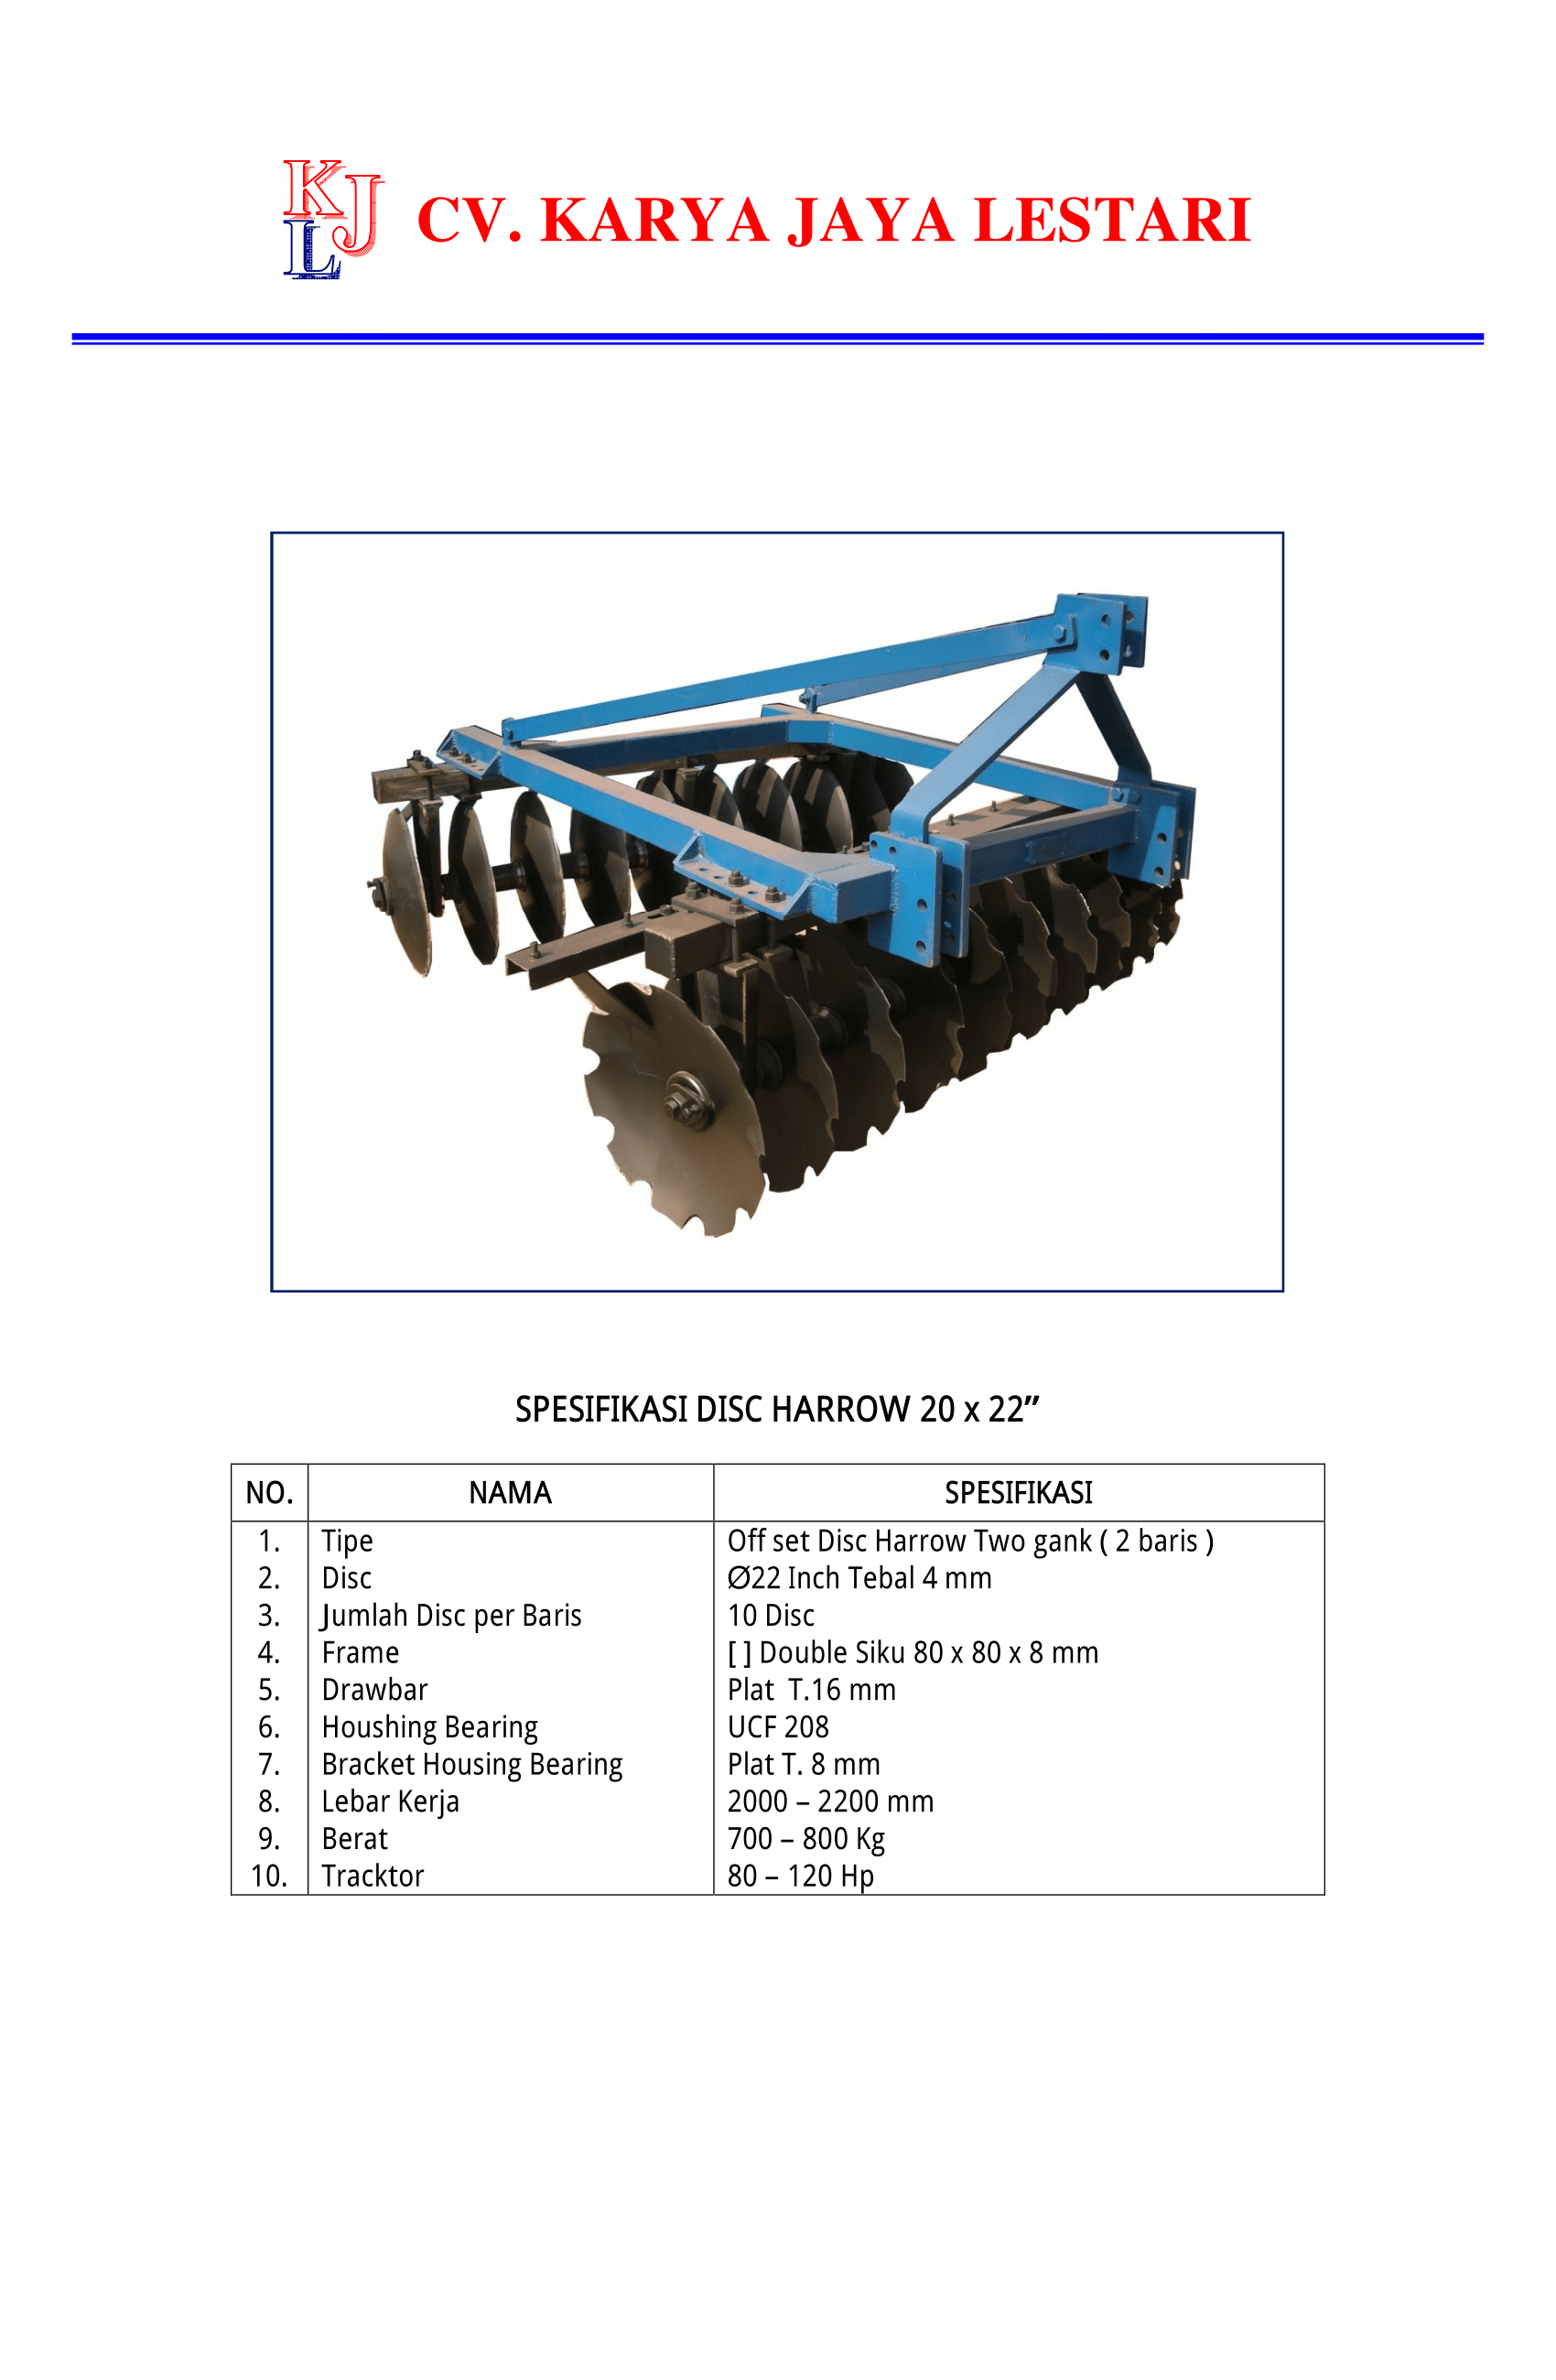 disc-harrow-20x22-1